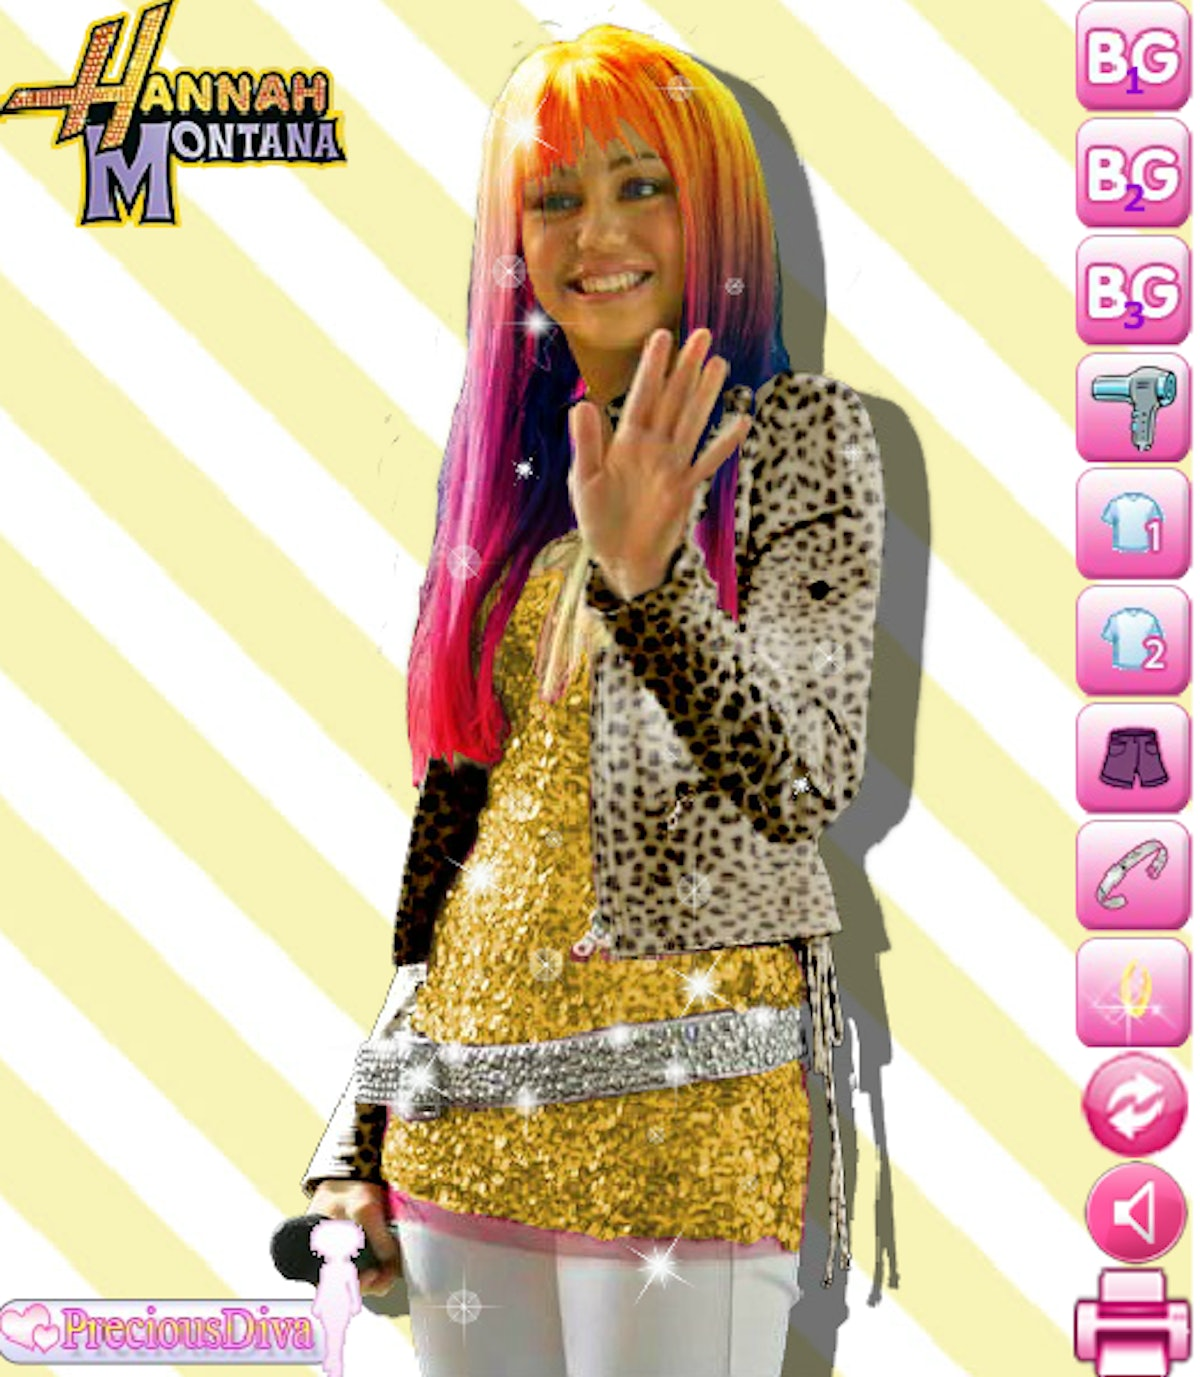 These throwback Disney Channel games to play online include a 'Hannah Montana' option.